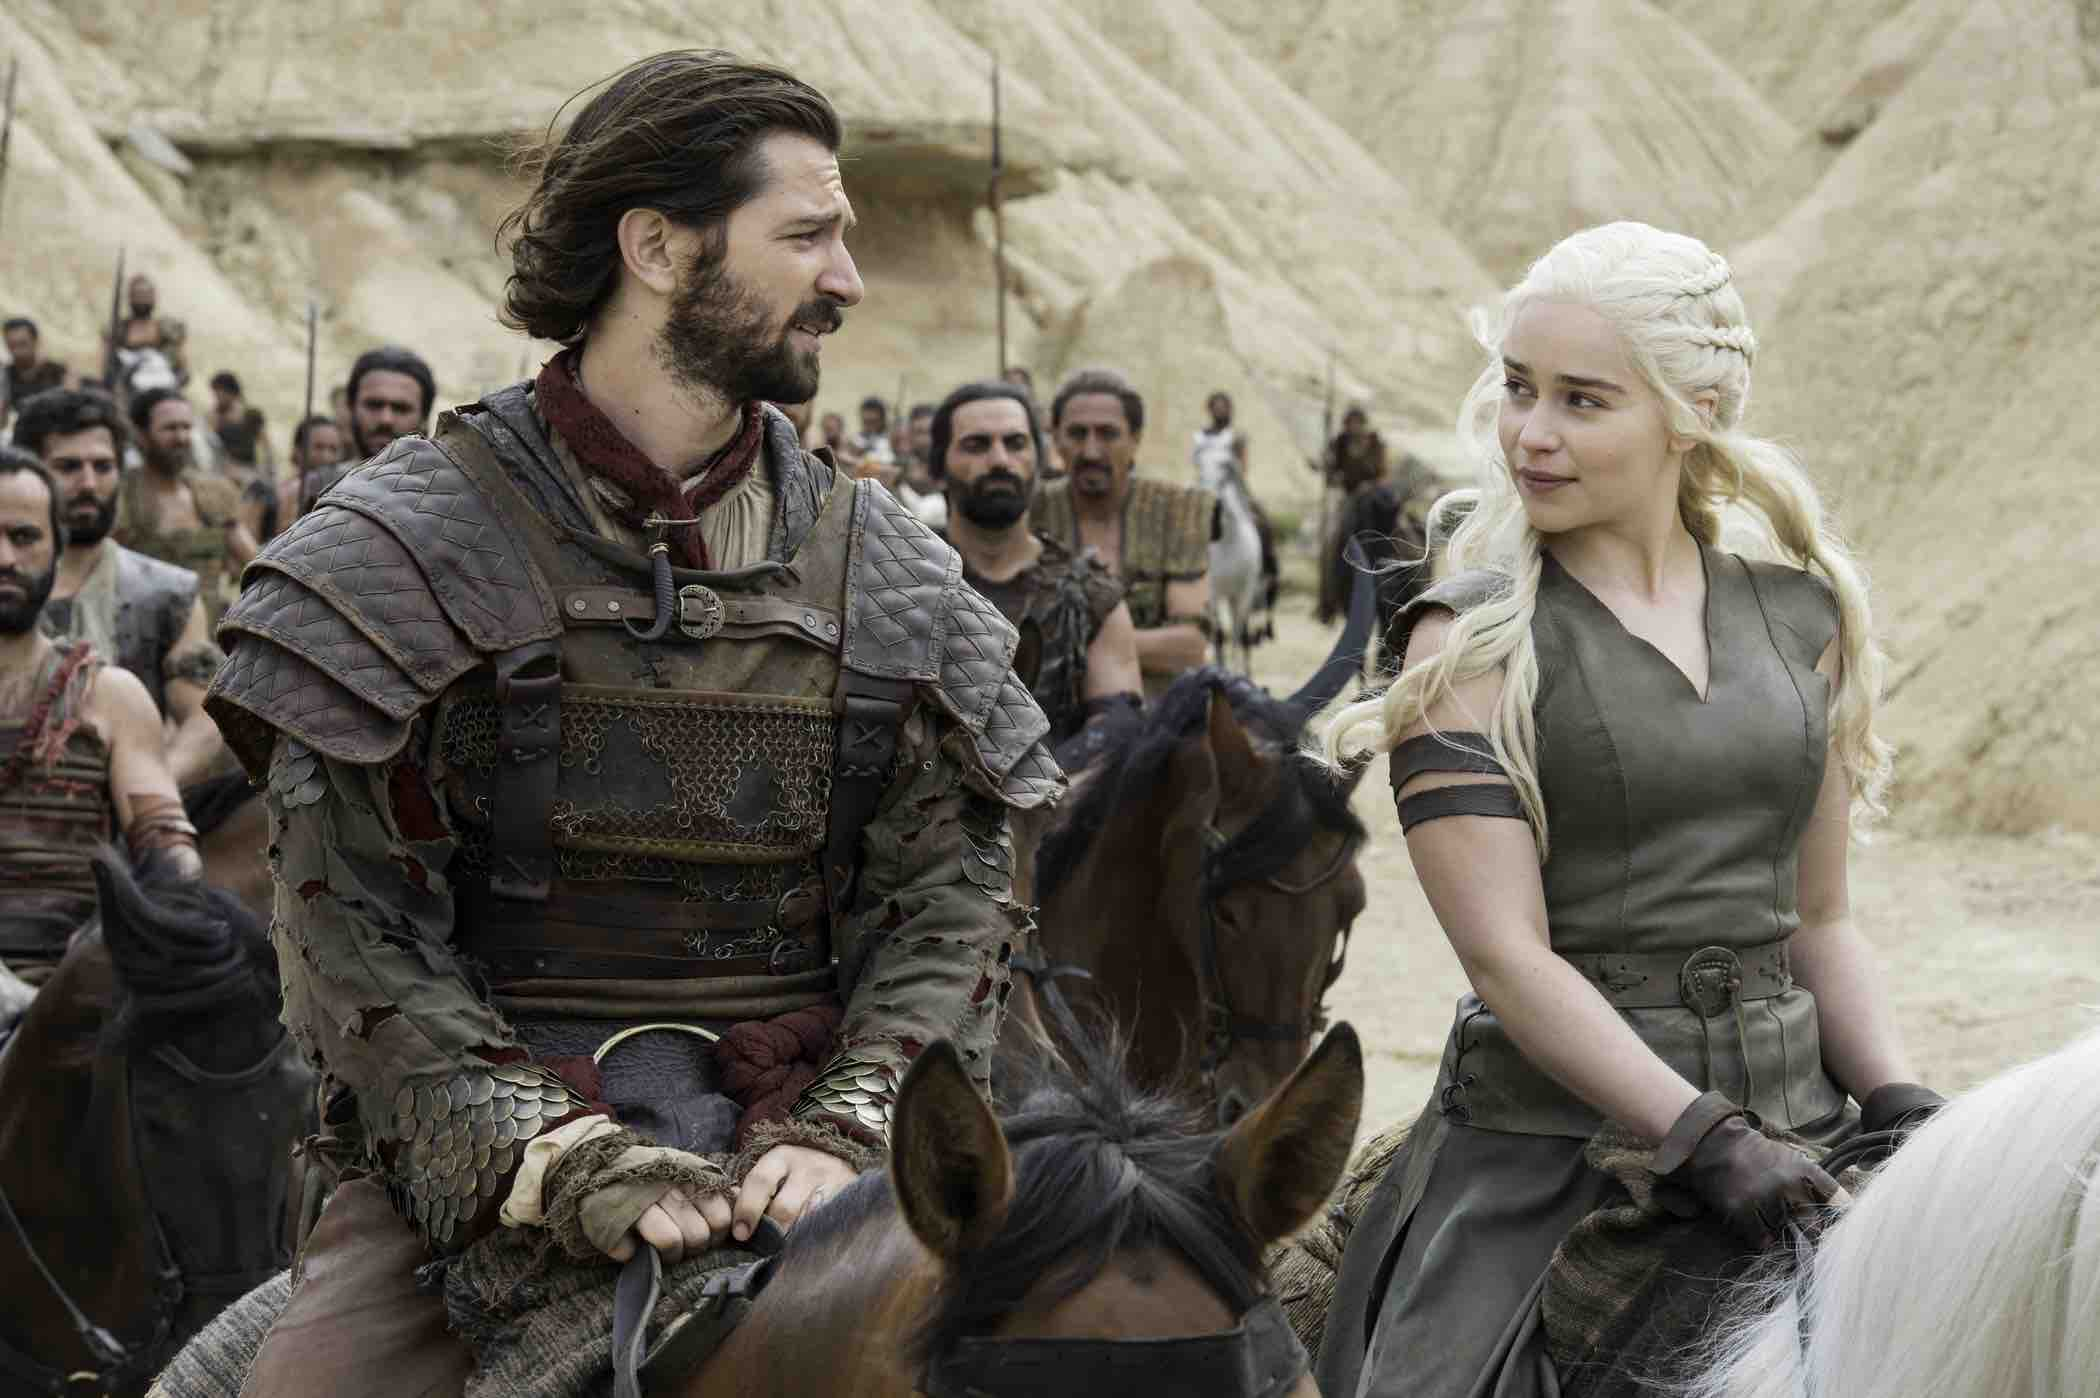 Daenerys and Daario look pretty pleased together as they chart their course to Meereen.